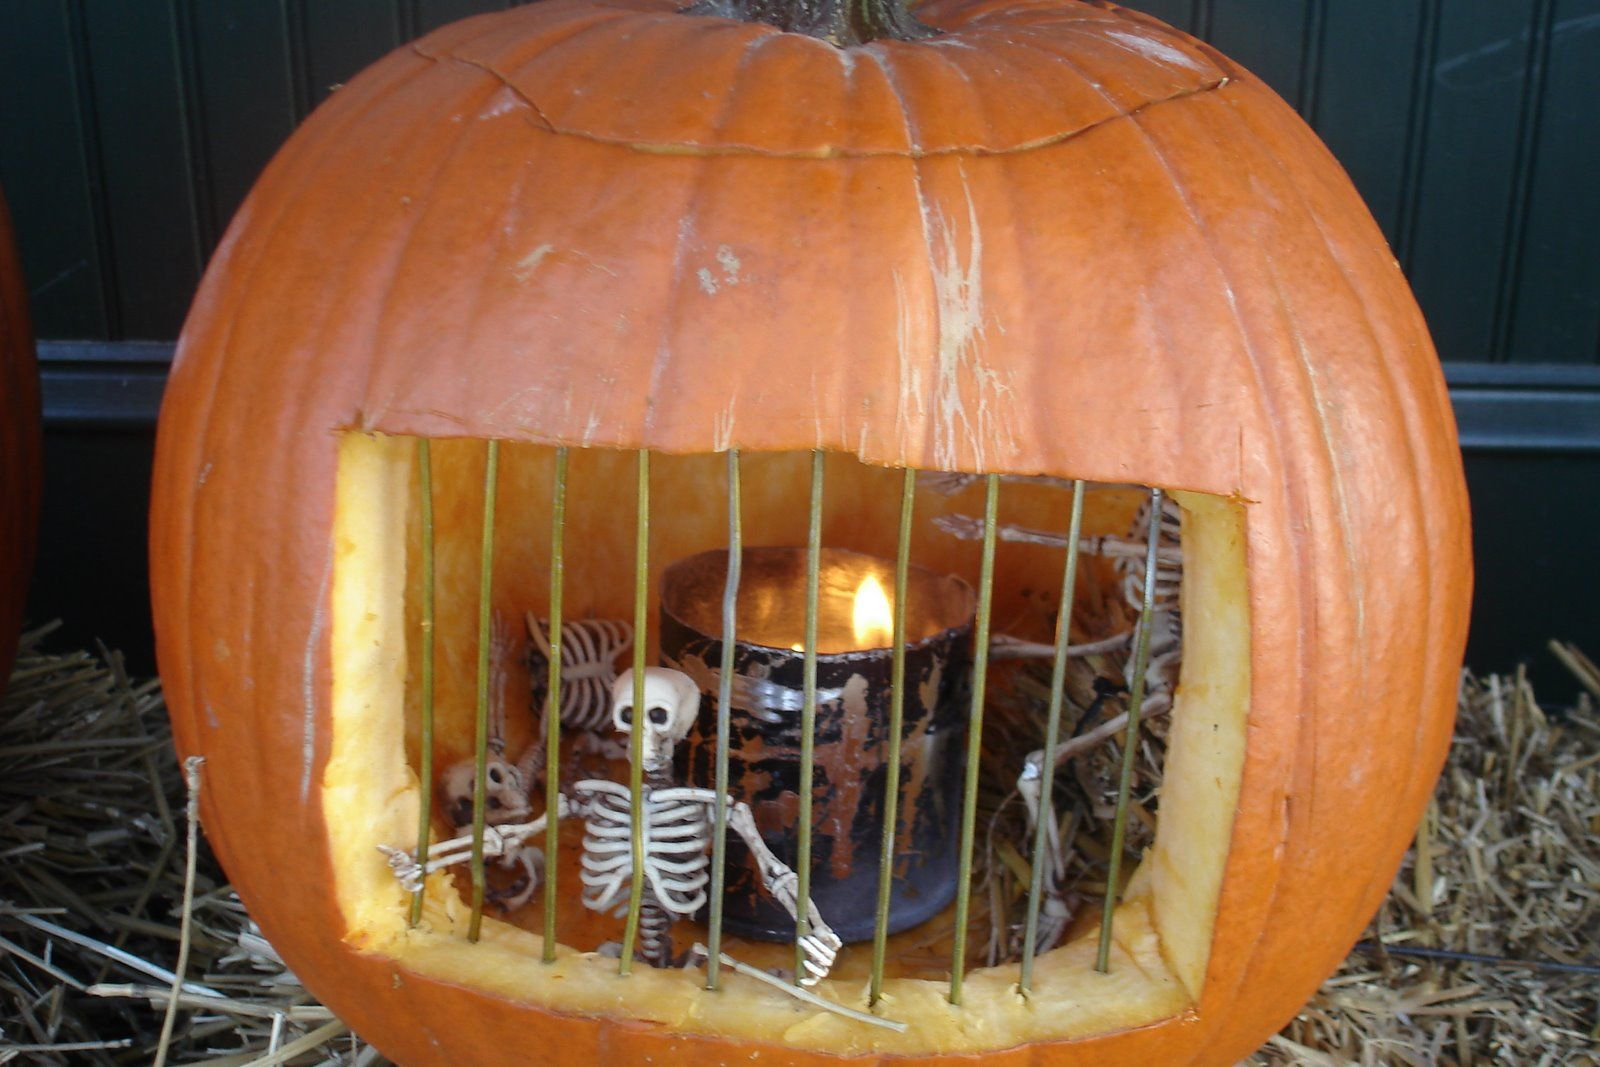 Carved pumpkin jail spooky stuff thatus cool and holloweenish